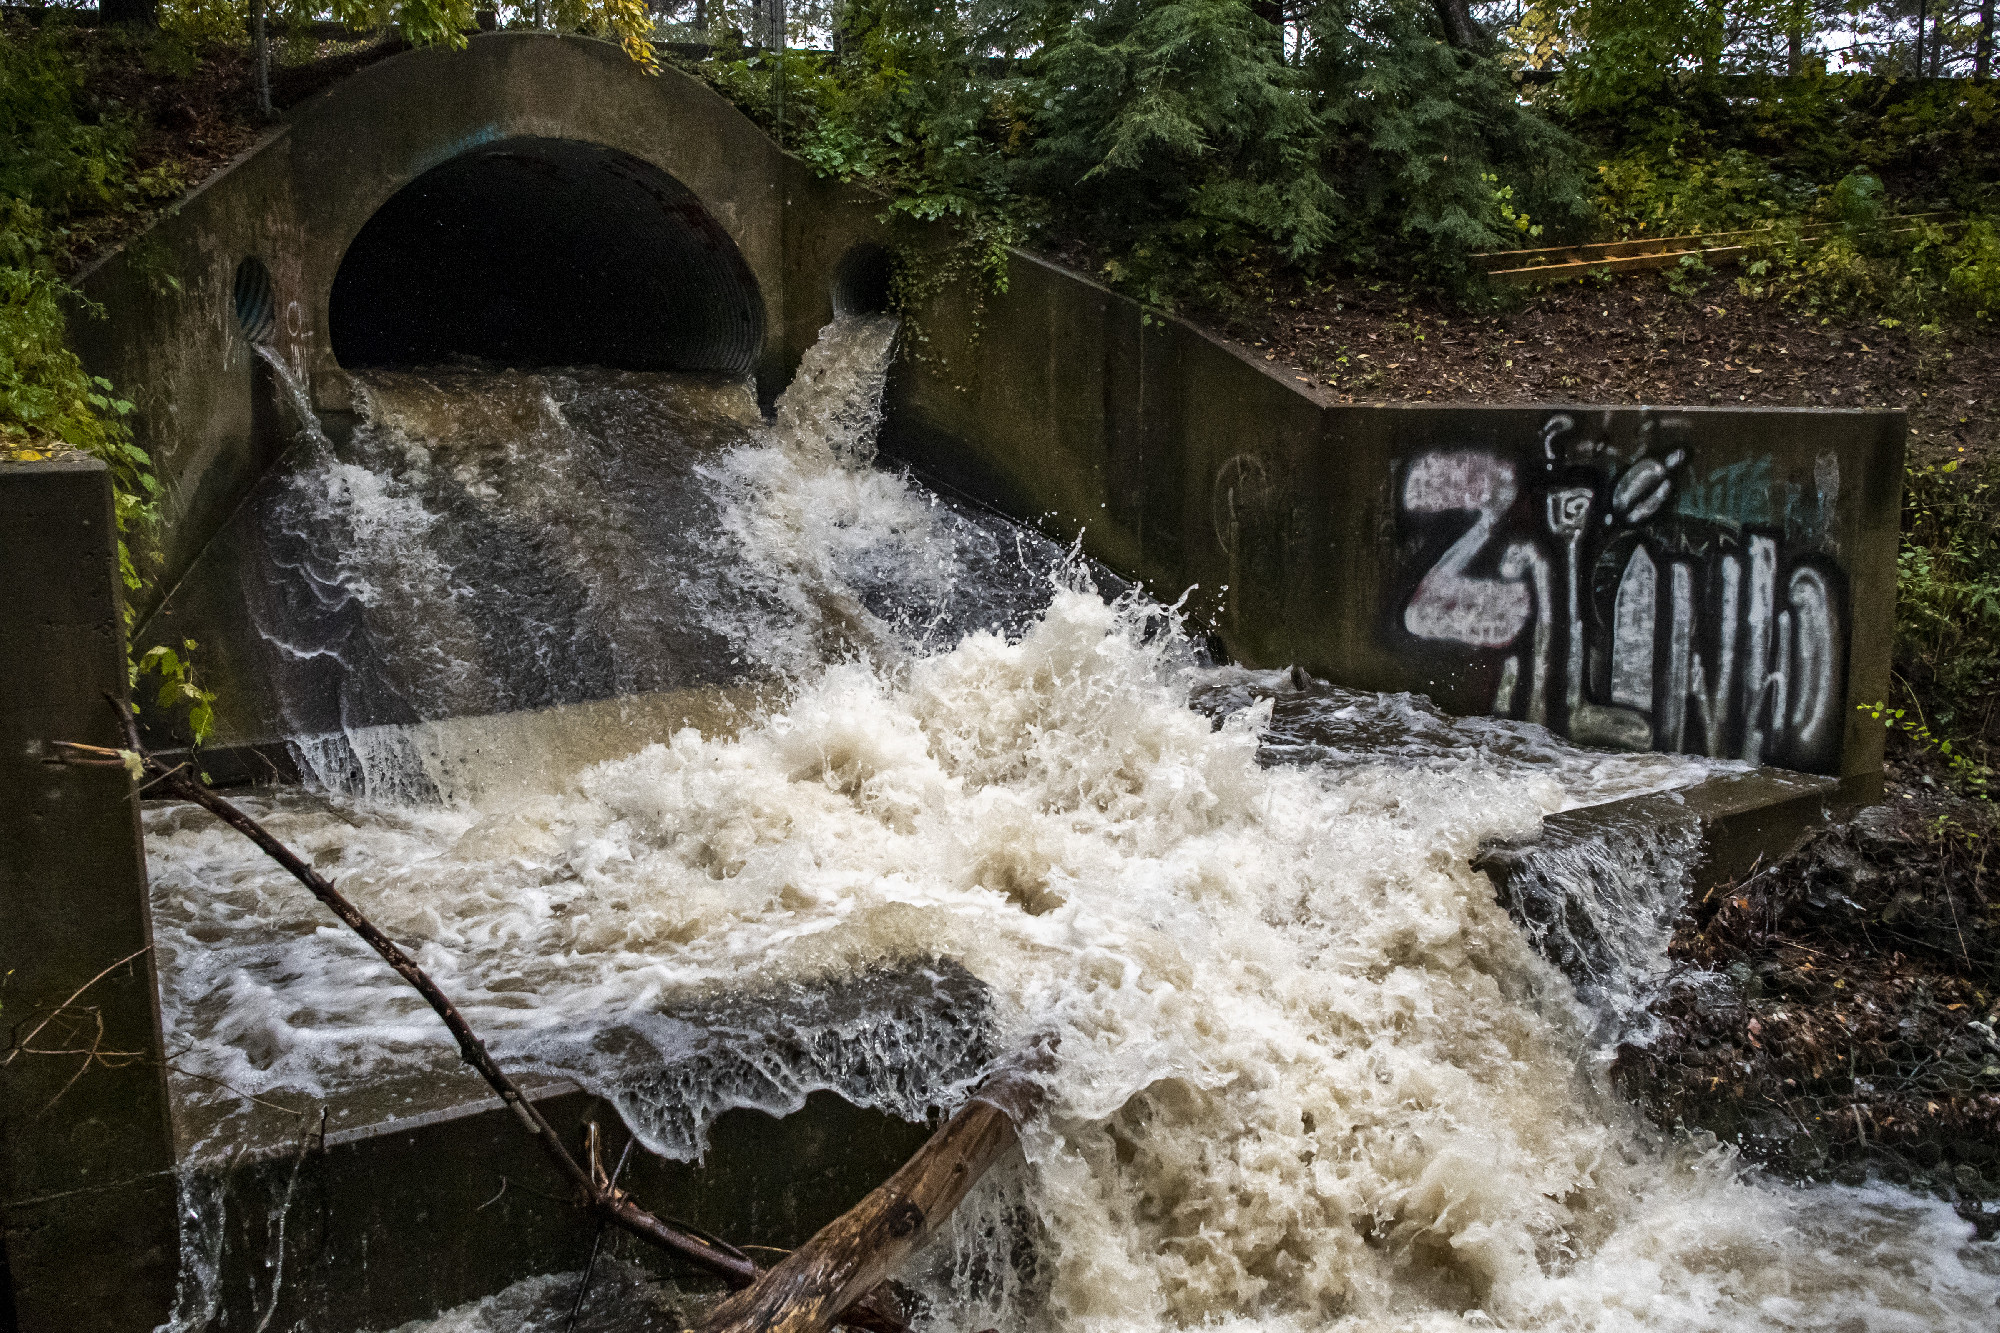 Capital Region slammed with rain, state of emergency leads to special ballots for first responders